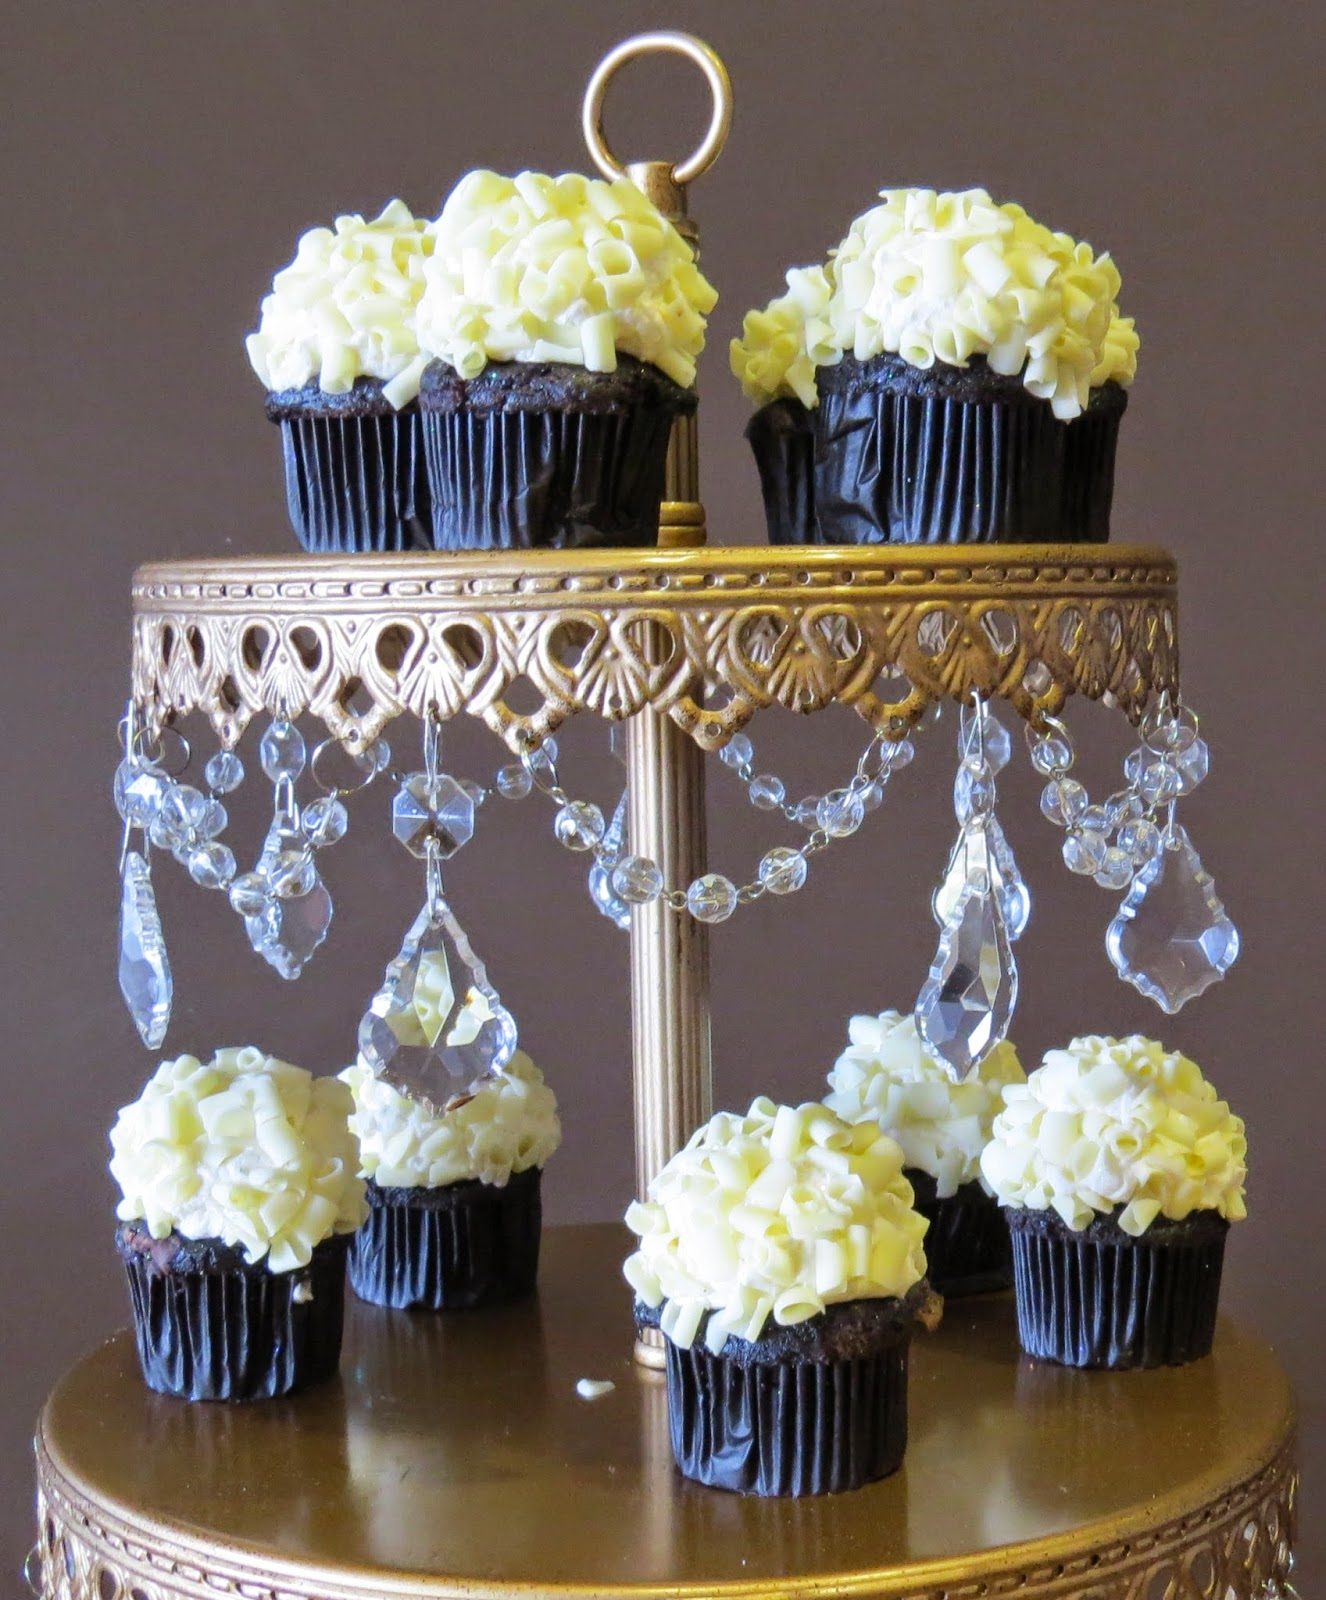 Cupcakes, Cake stand, Crystals, gold